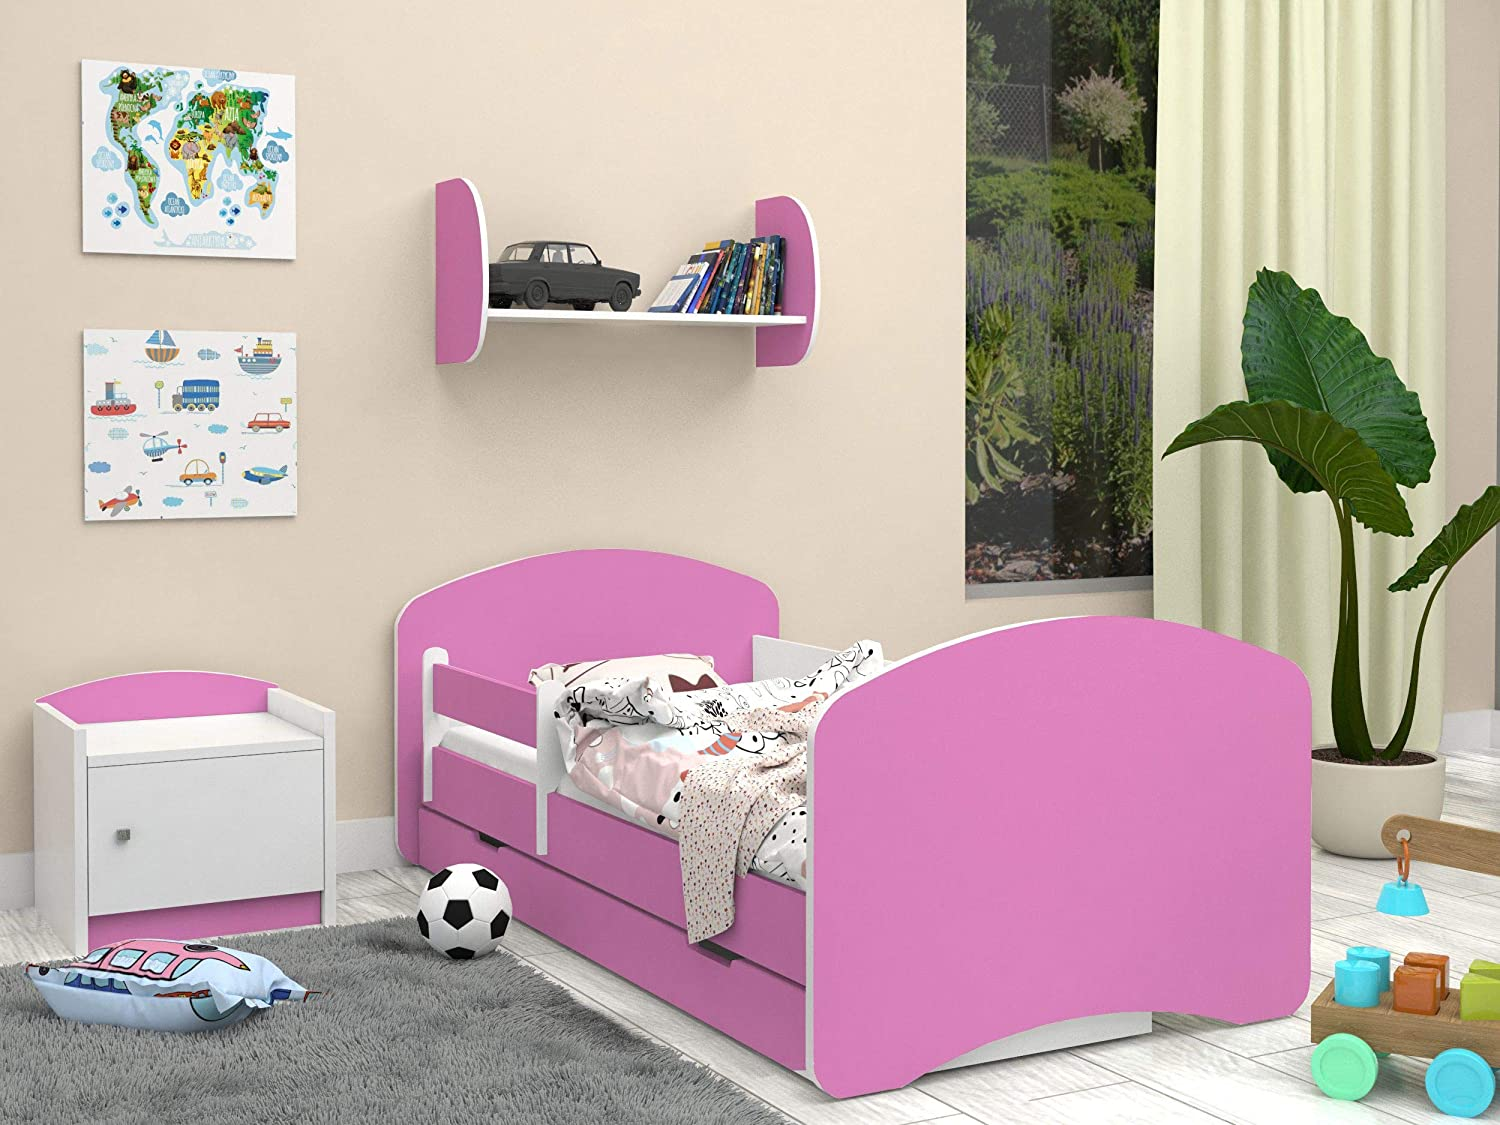 Double-sided CHILDRENS BED WITH DRAWER Modern Design with Safe Edges and Fall Protection foam Mattress 7 cm Pink Happy Babies 00 Pink, 140x70